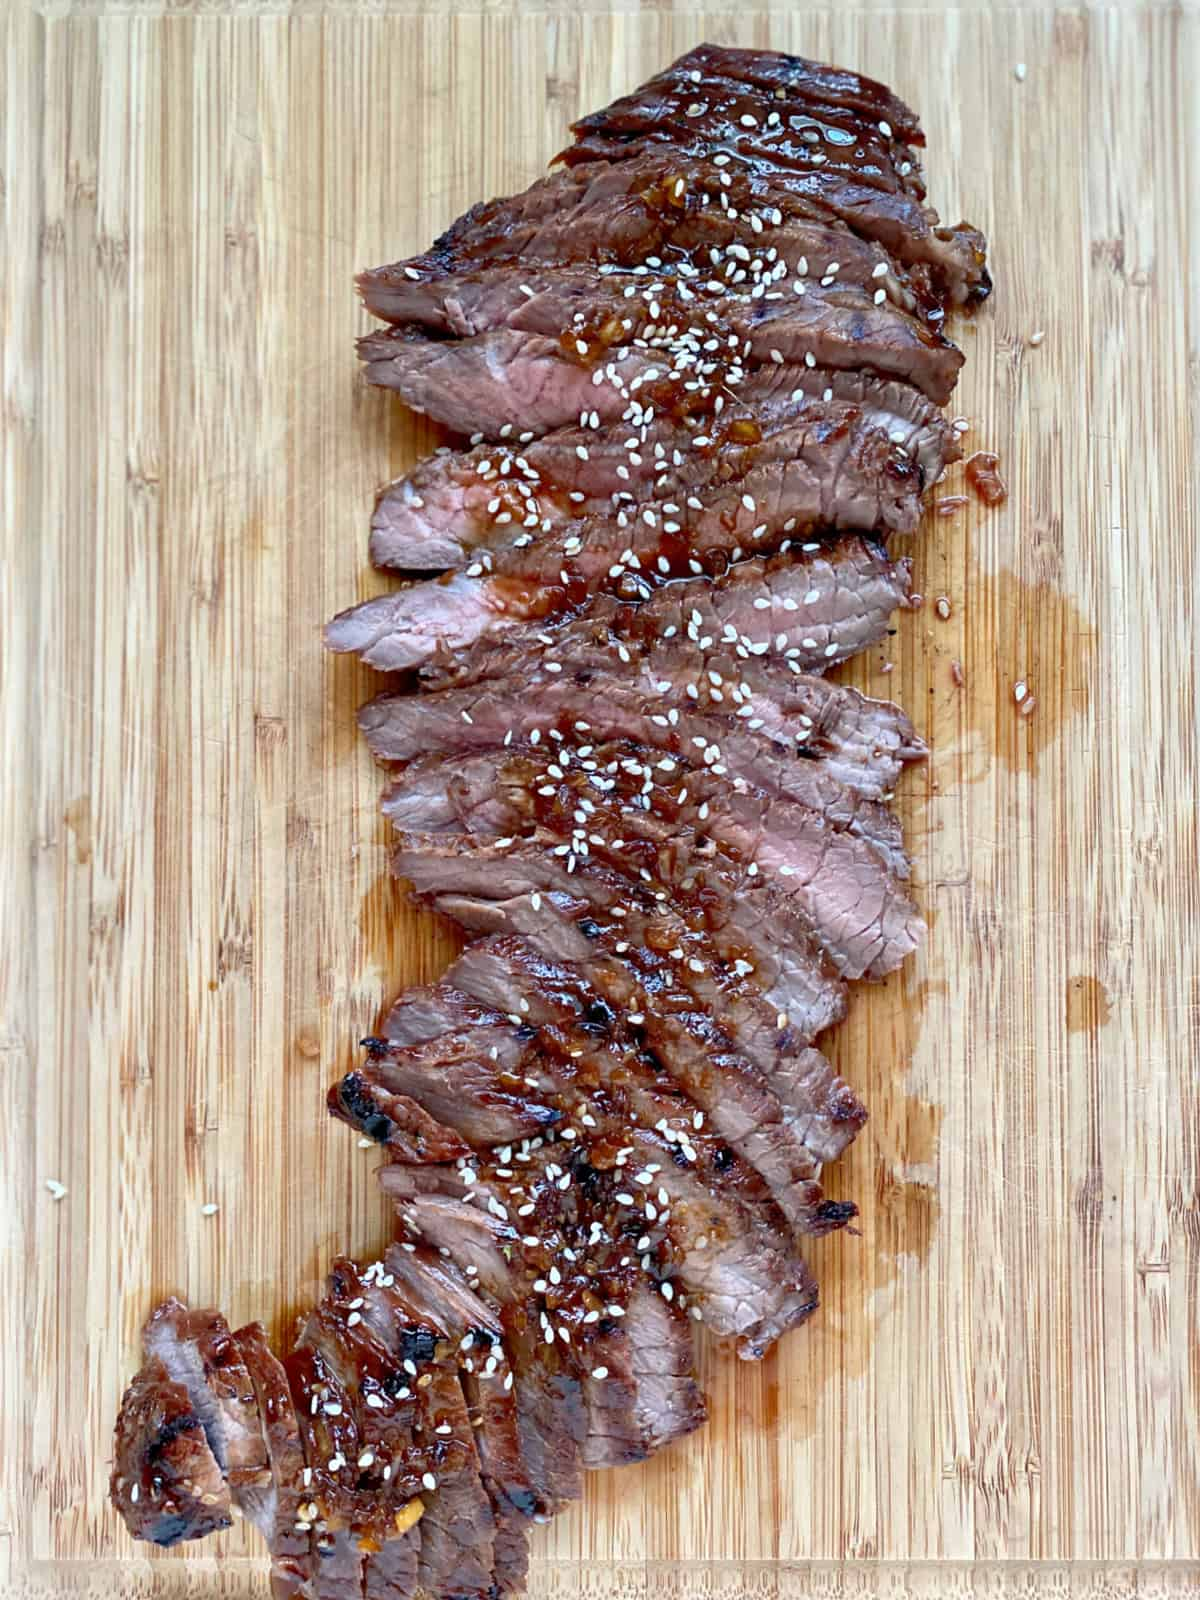 Top view of a wood cutting board with sliced steak topped with sauce and sesame seeds.